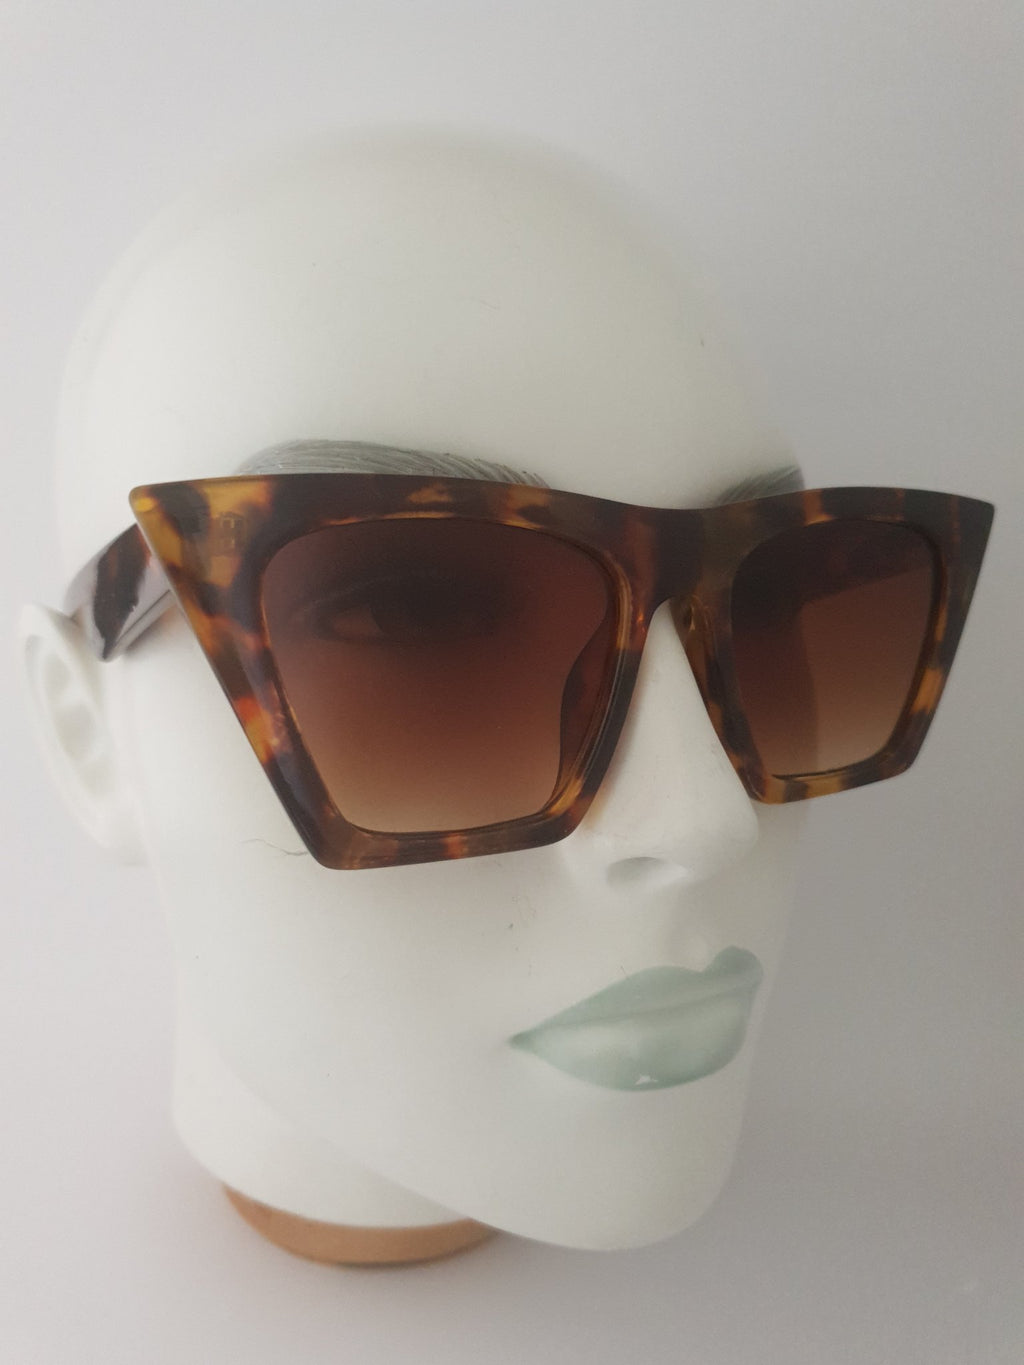 Sunglasses - Flight - Tortoiseshell